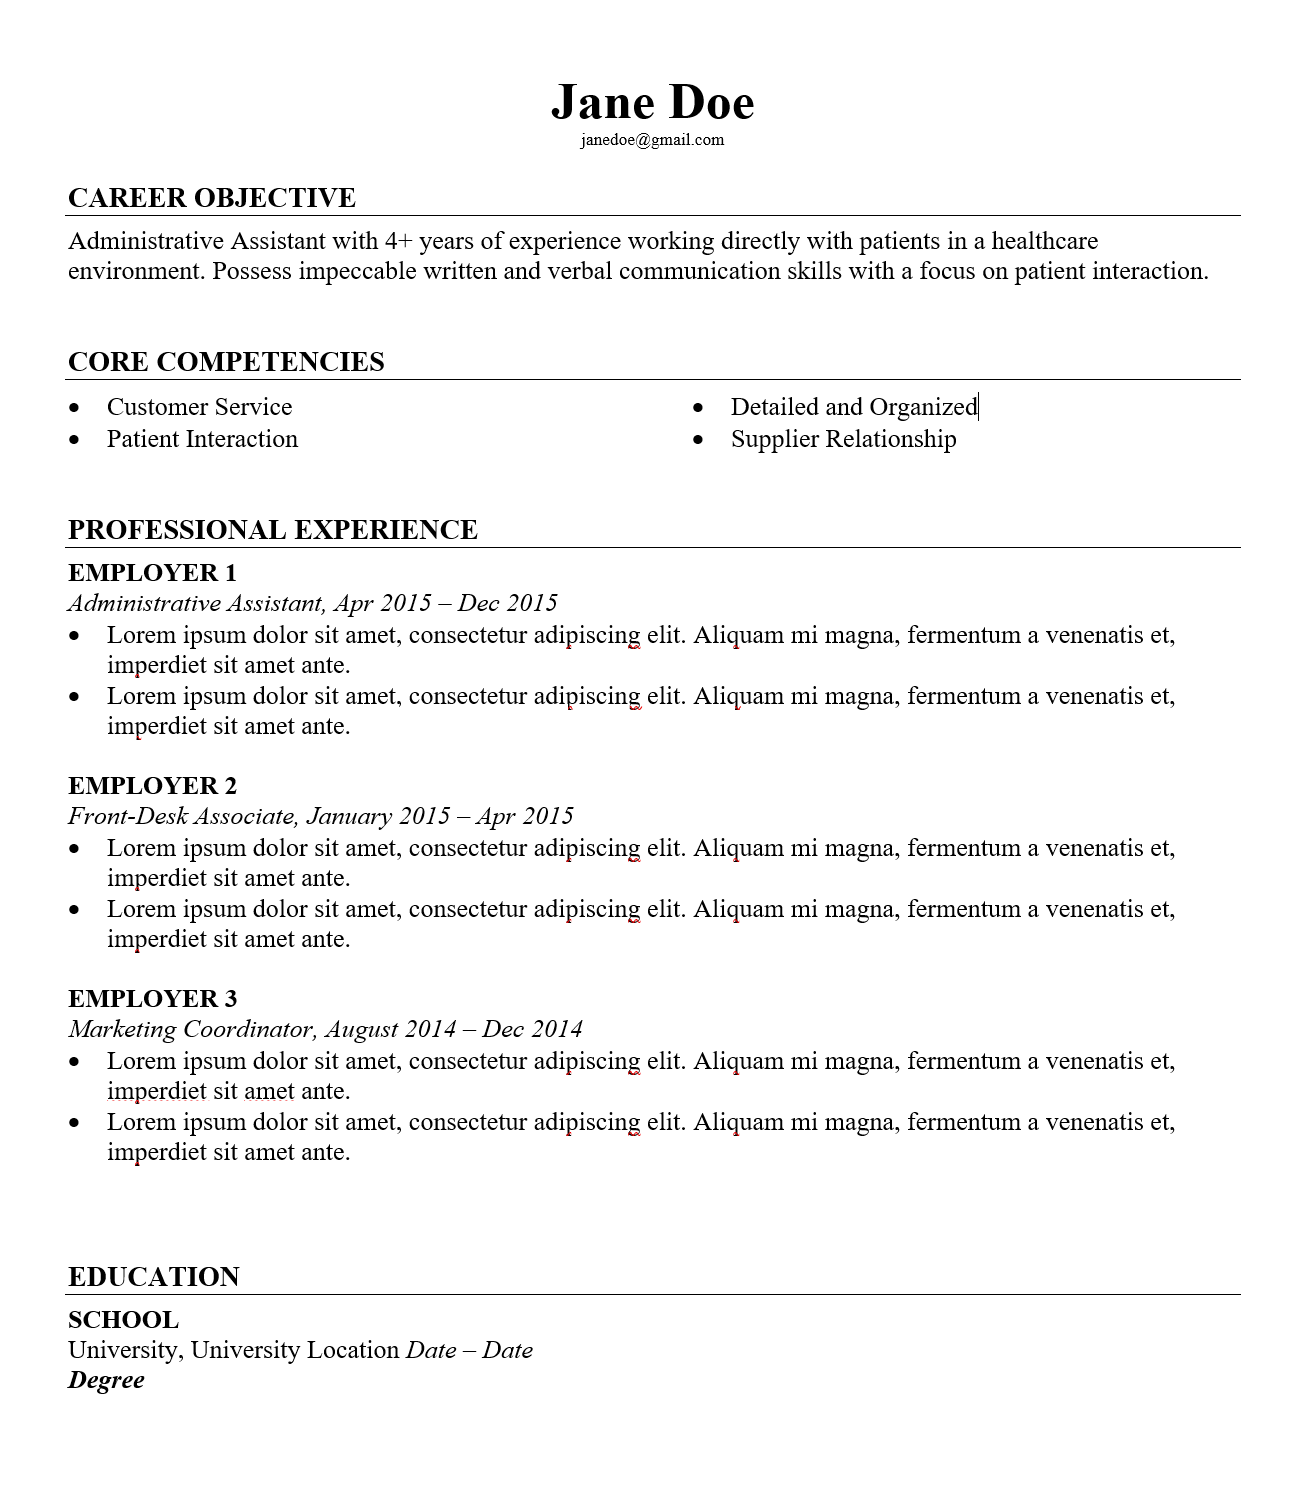 Job Hopping Resume Example - HospitalCareers.com